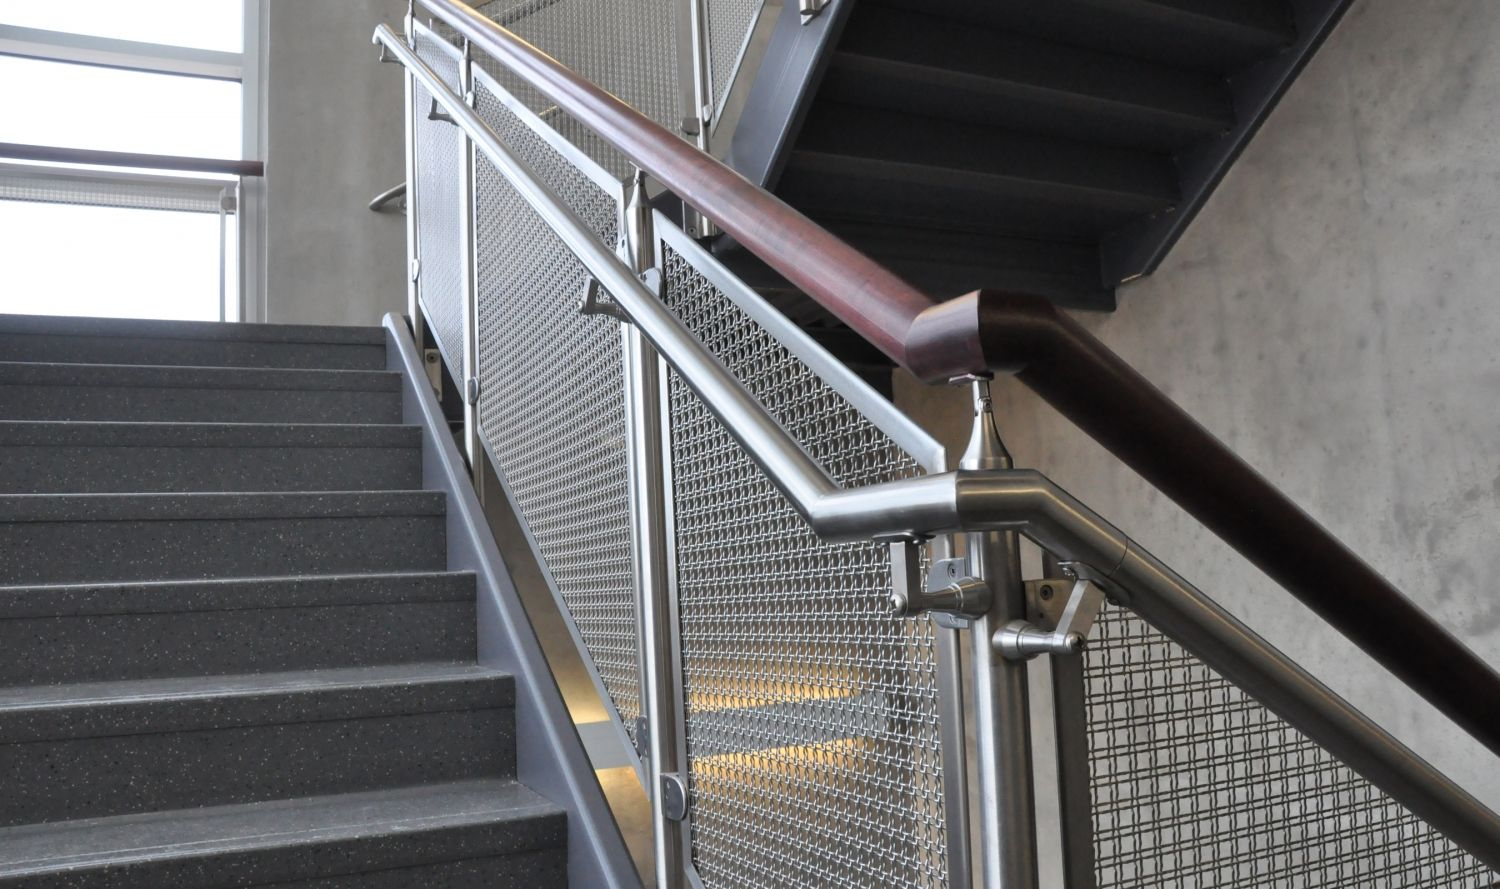 The openness of the stainless steel wire mesh railing infill panels ...